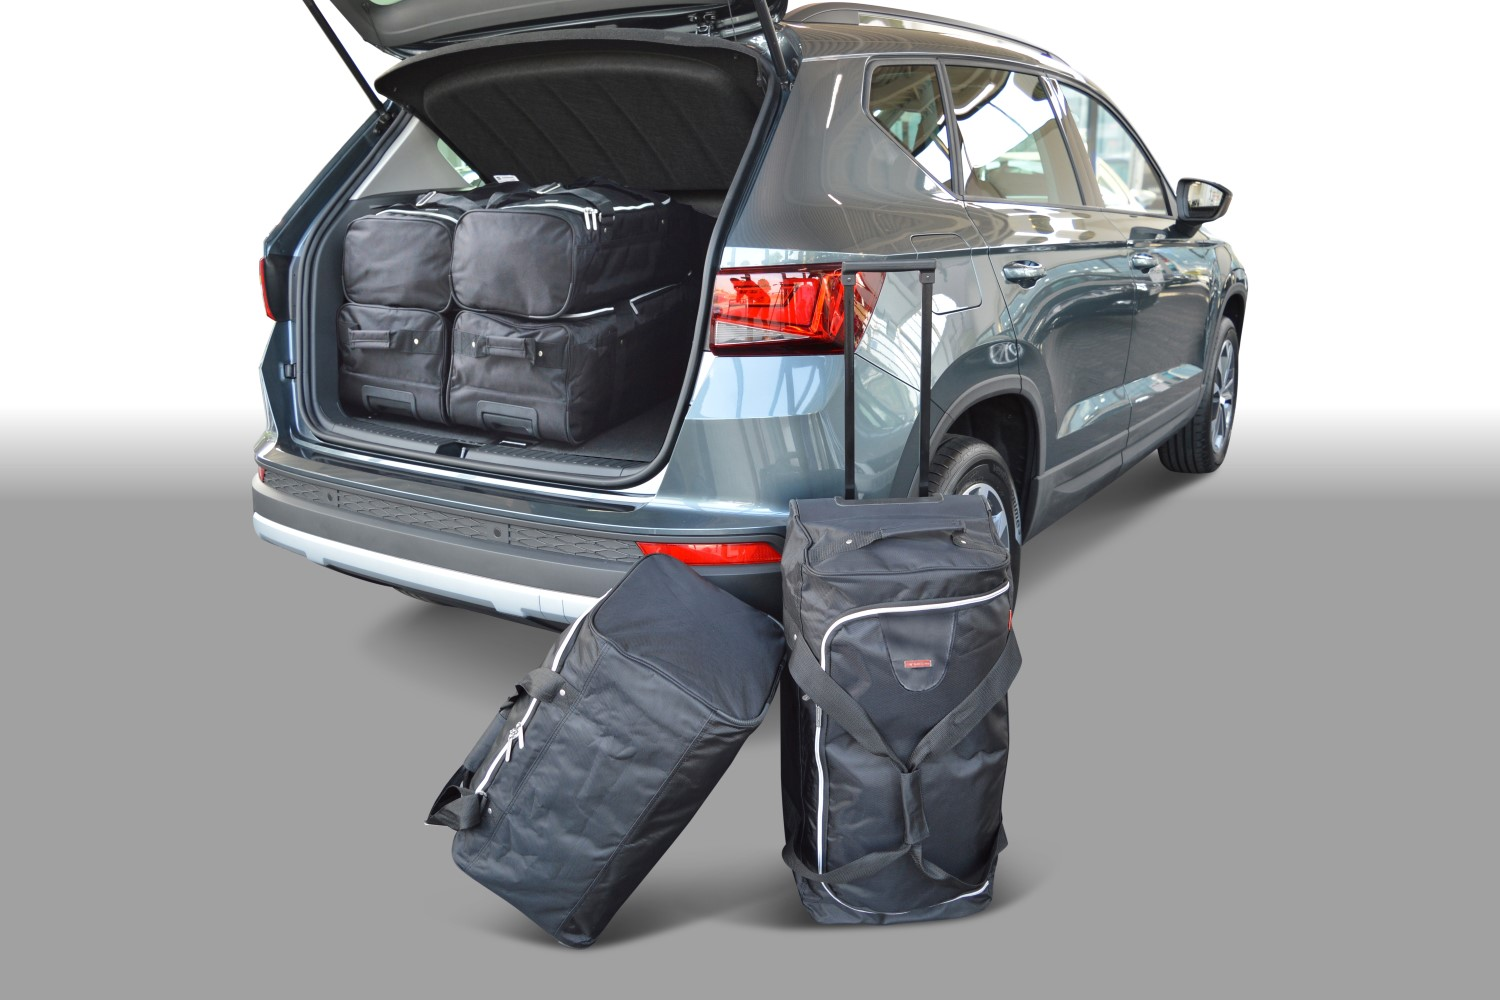 ateca seat ateca 2016 pr sent car bags set de sacs de voyage plancher du coffre haute avec. Black Bedroom Furniture Sets. Home Design Ideas